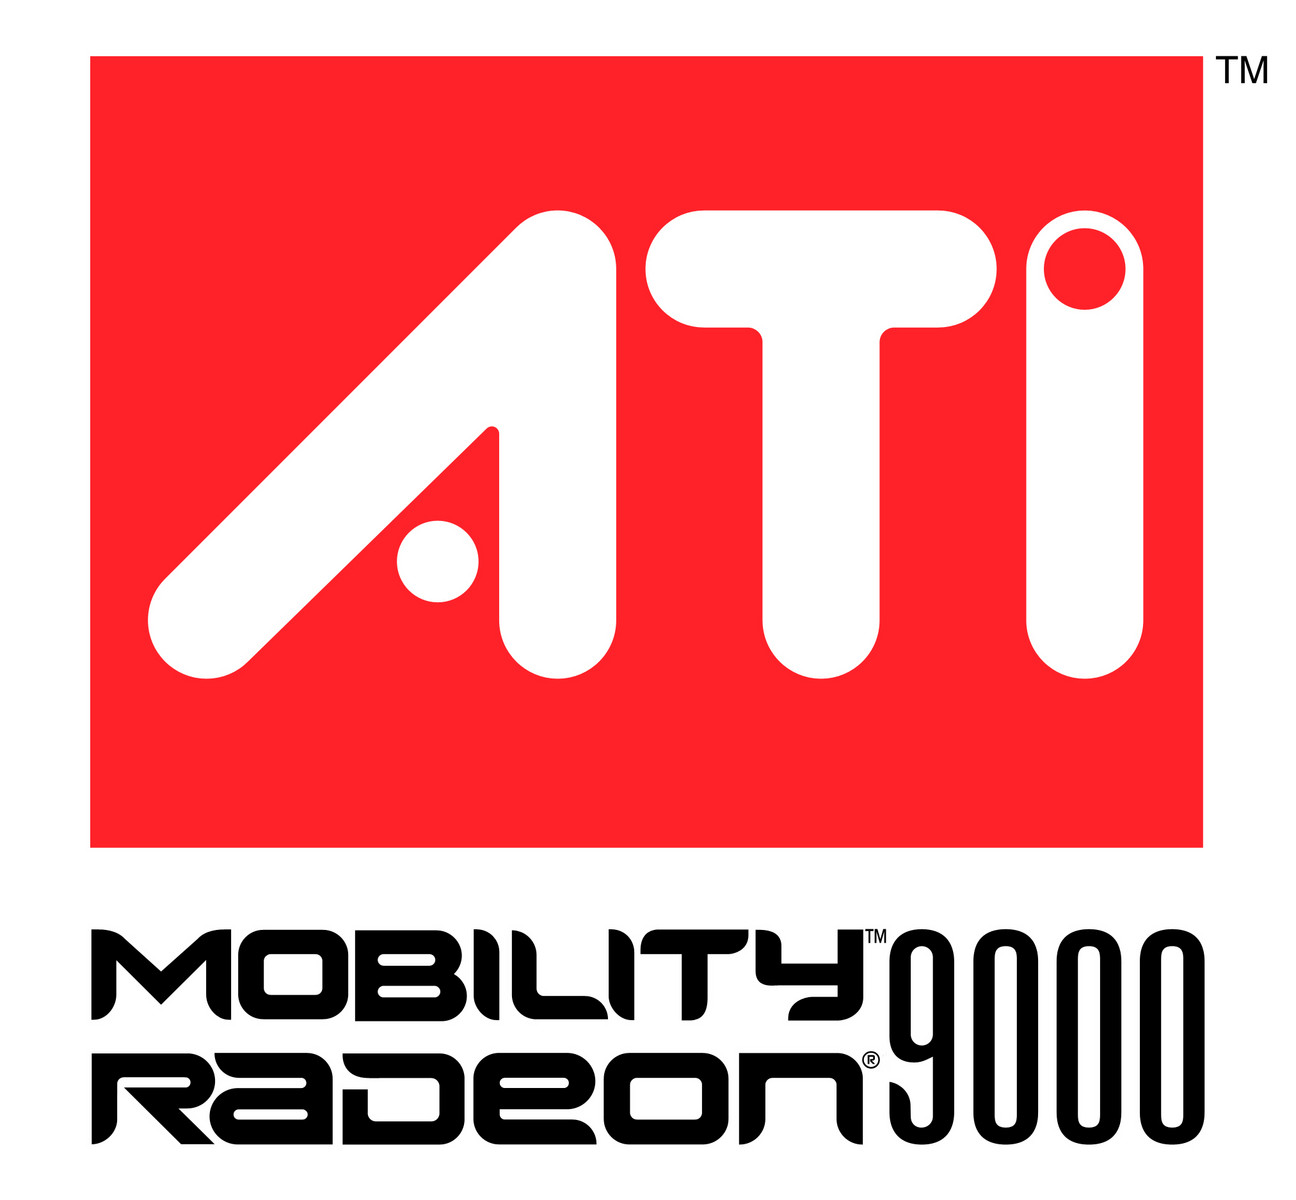 ATI MOBILITY RADEON 9000 GRAPHICS DOWNLOAD DRIVERS